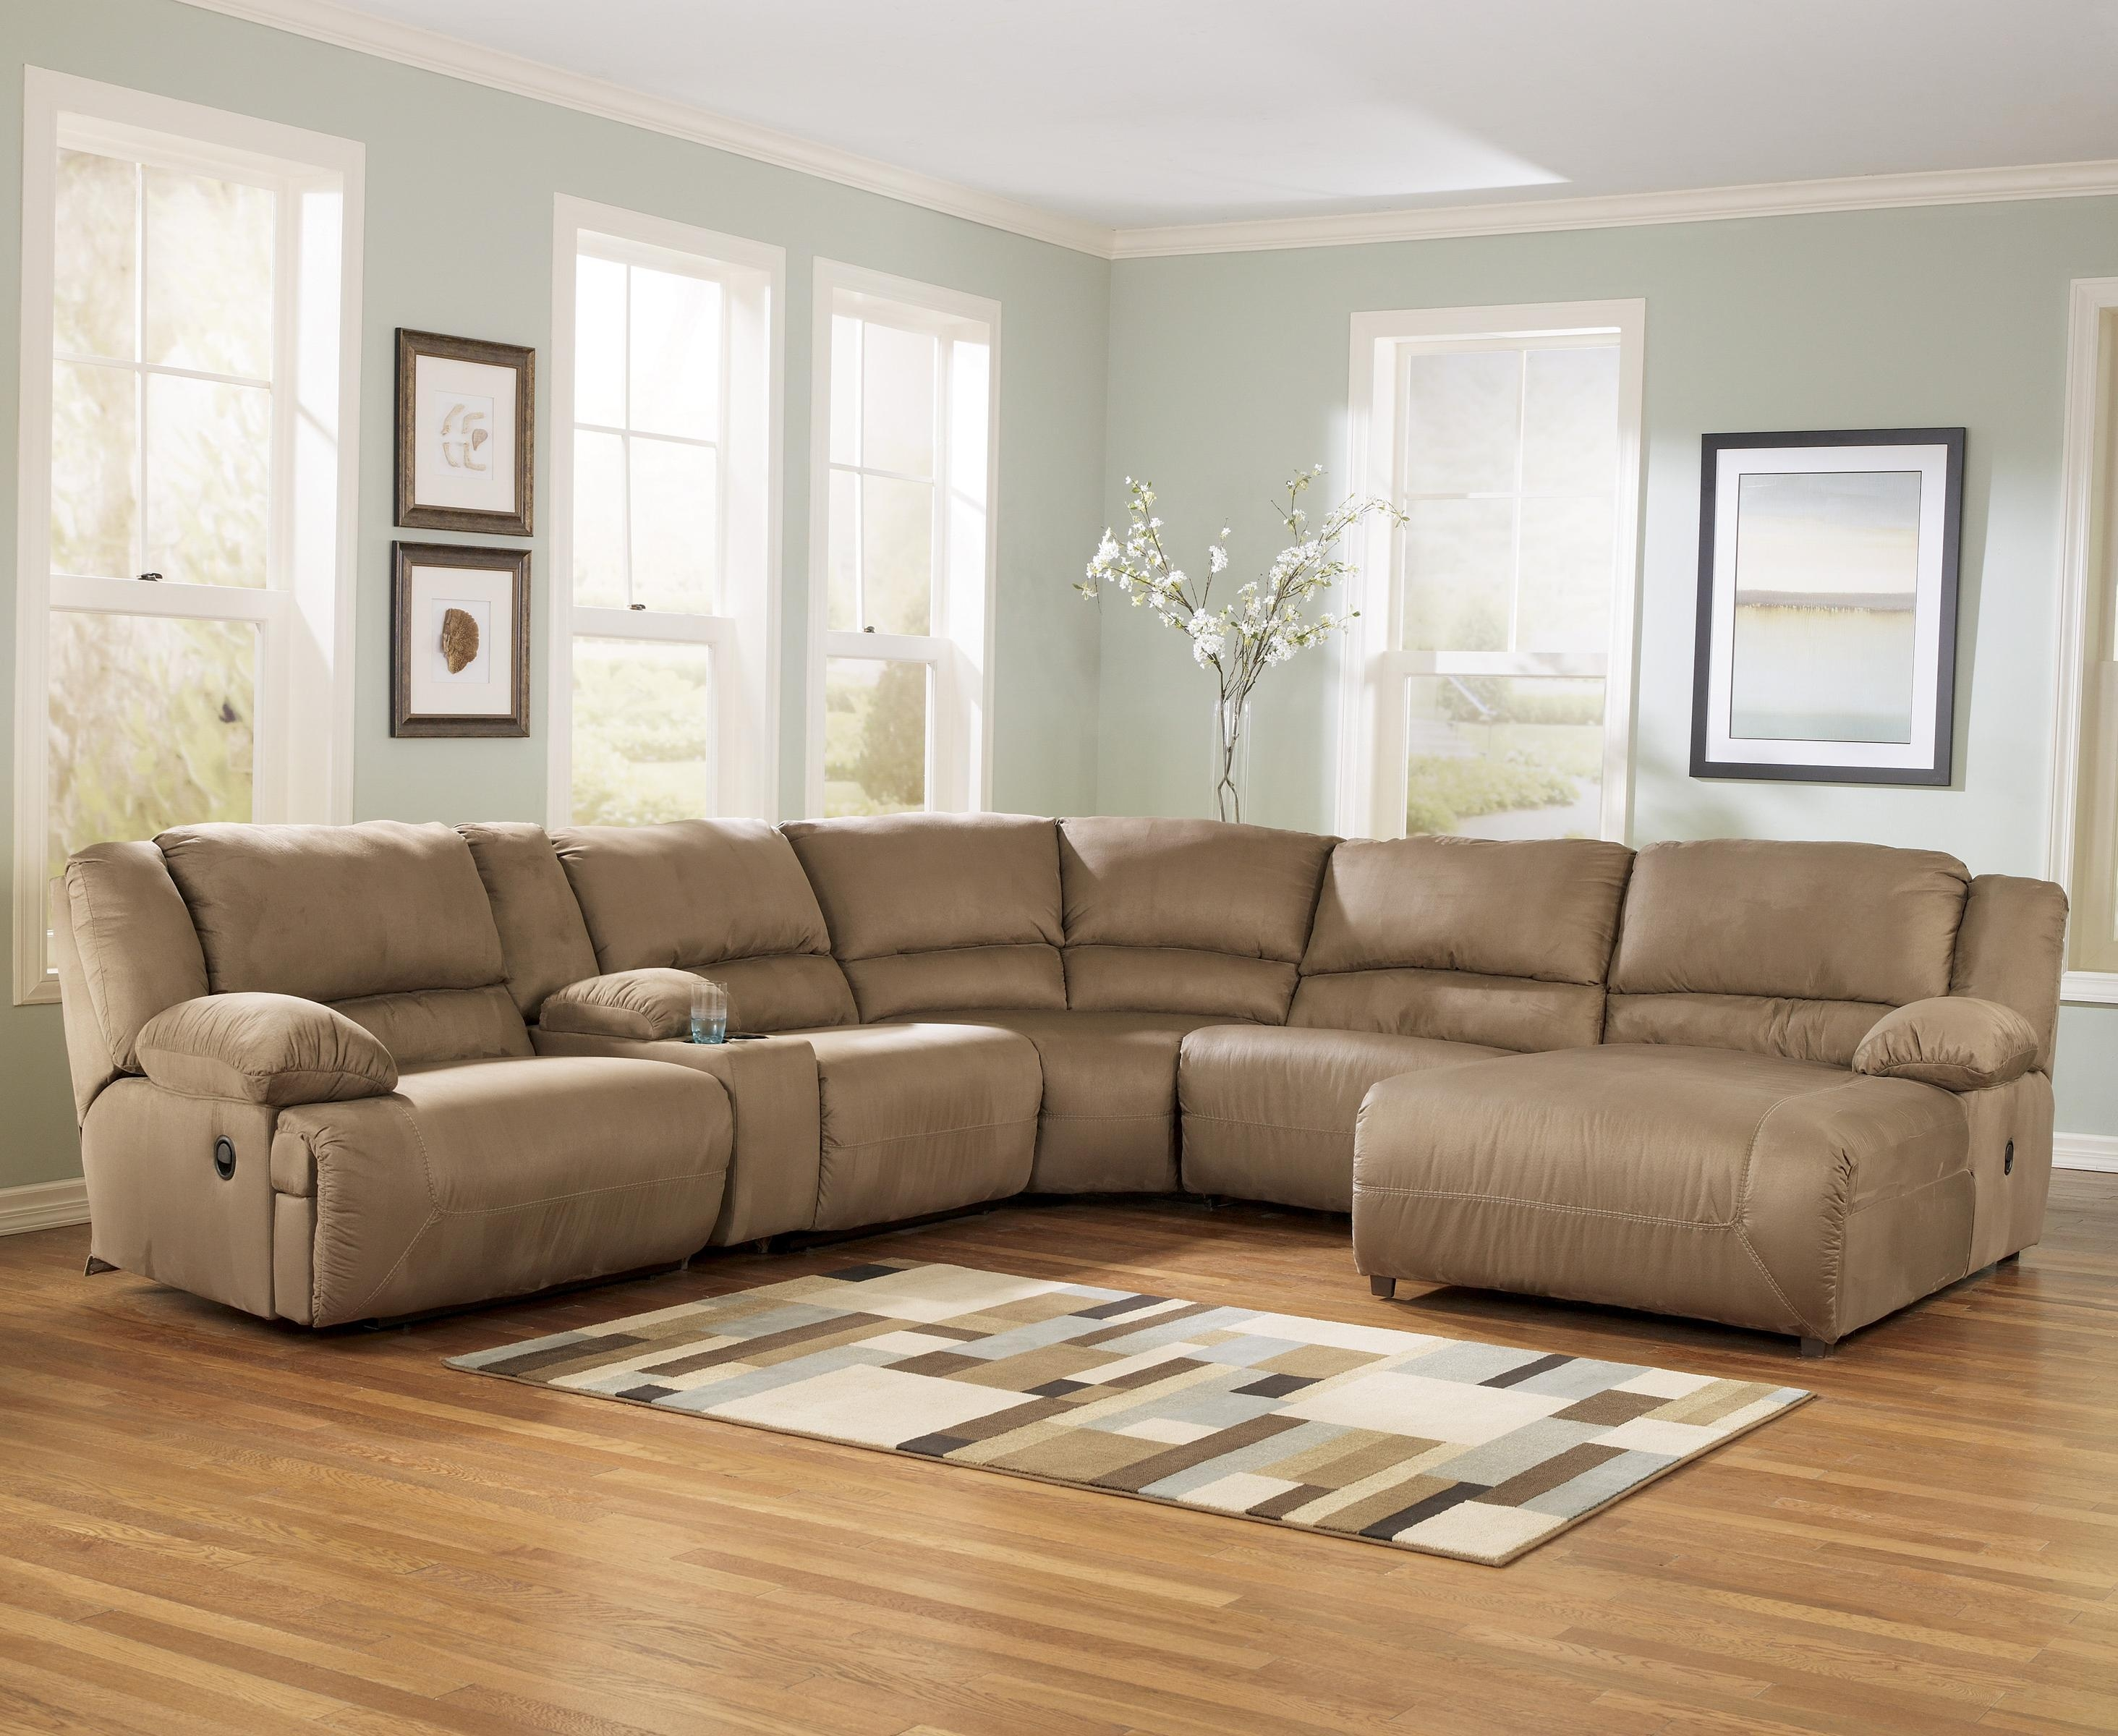 Sectional Sofas With Cup Holders Leather Sofa Cleaner Creations Pertaining To Sofas With Cup Holders (Image 12 of 20)